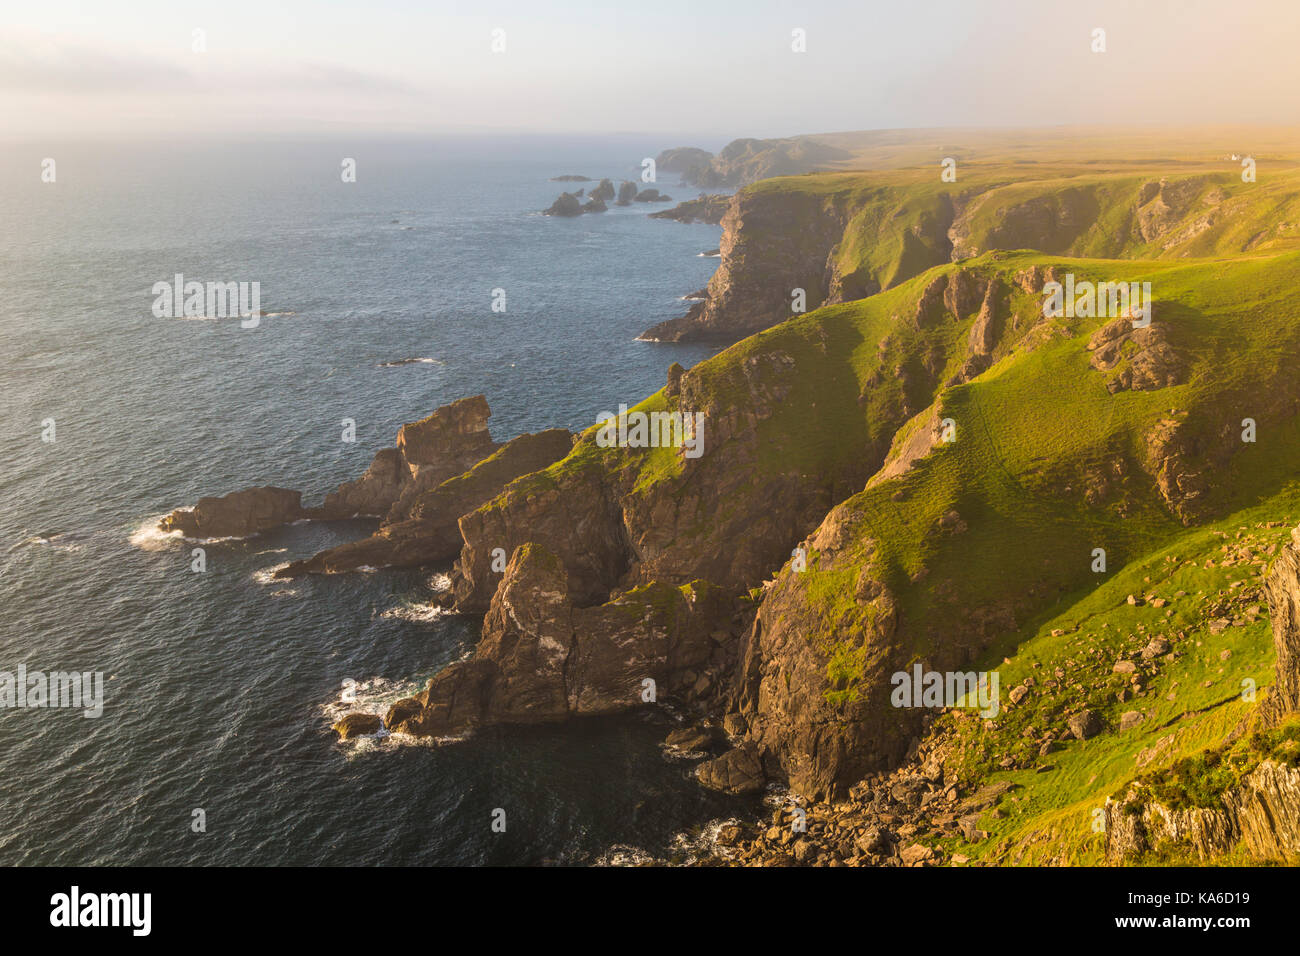 Mull of Oa, Islay, Scotland, in evening time with nice warm light, fog is comming in over the cliffs, gren grass - Stock Image